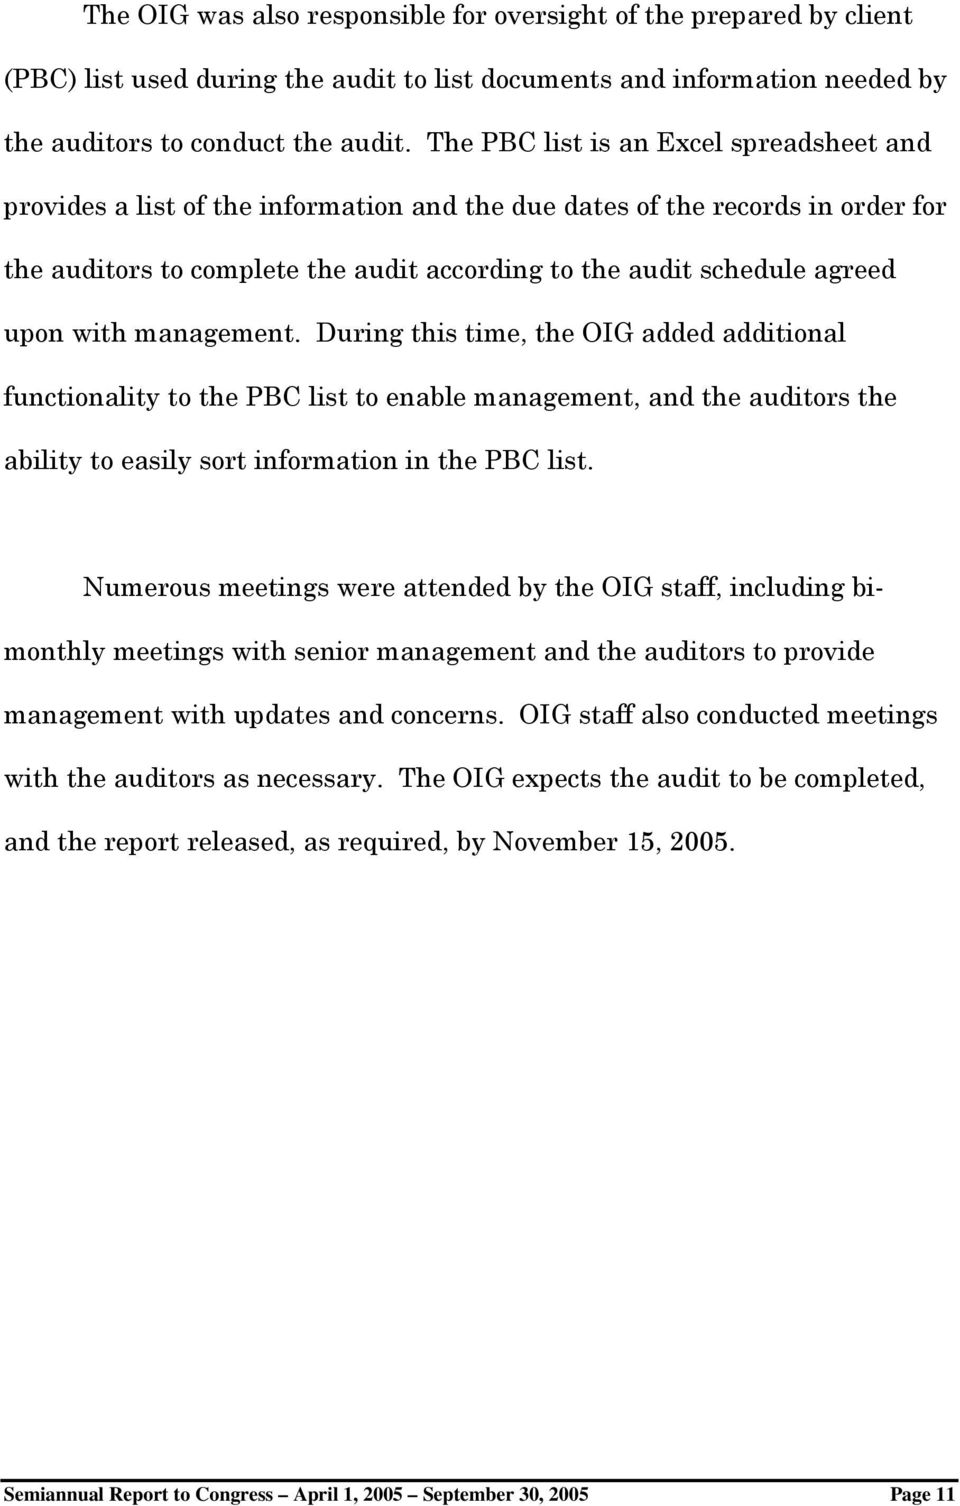 upon with management. During this time, the OIG added additional functionality to the PBC list to enable management, and the auditors the ability to easily sort information in the PBC list.